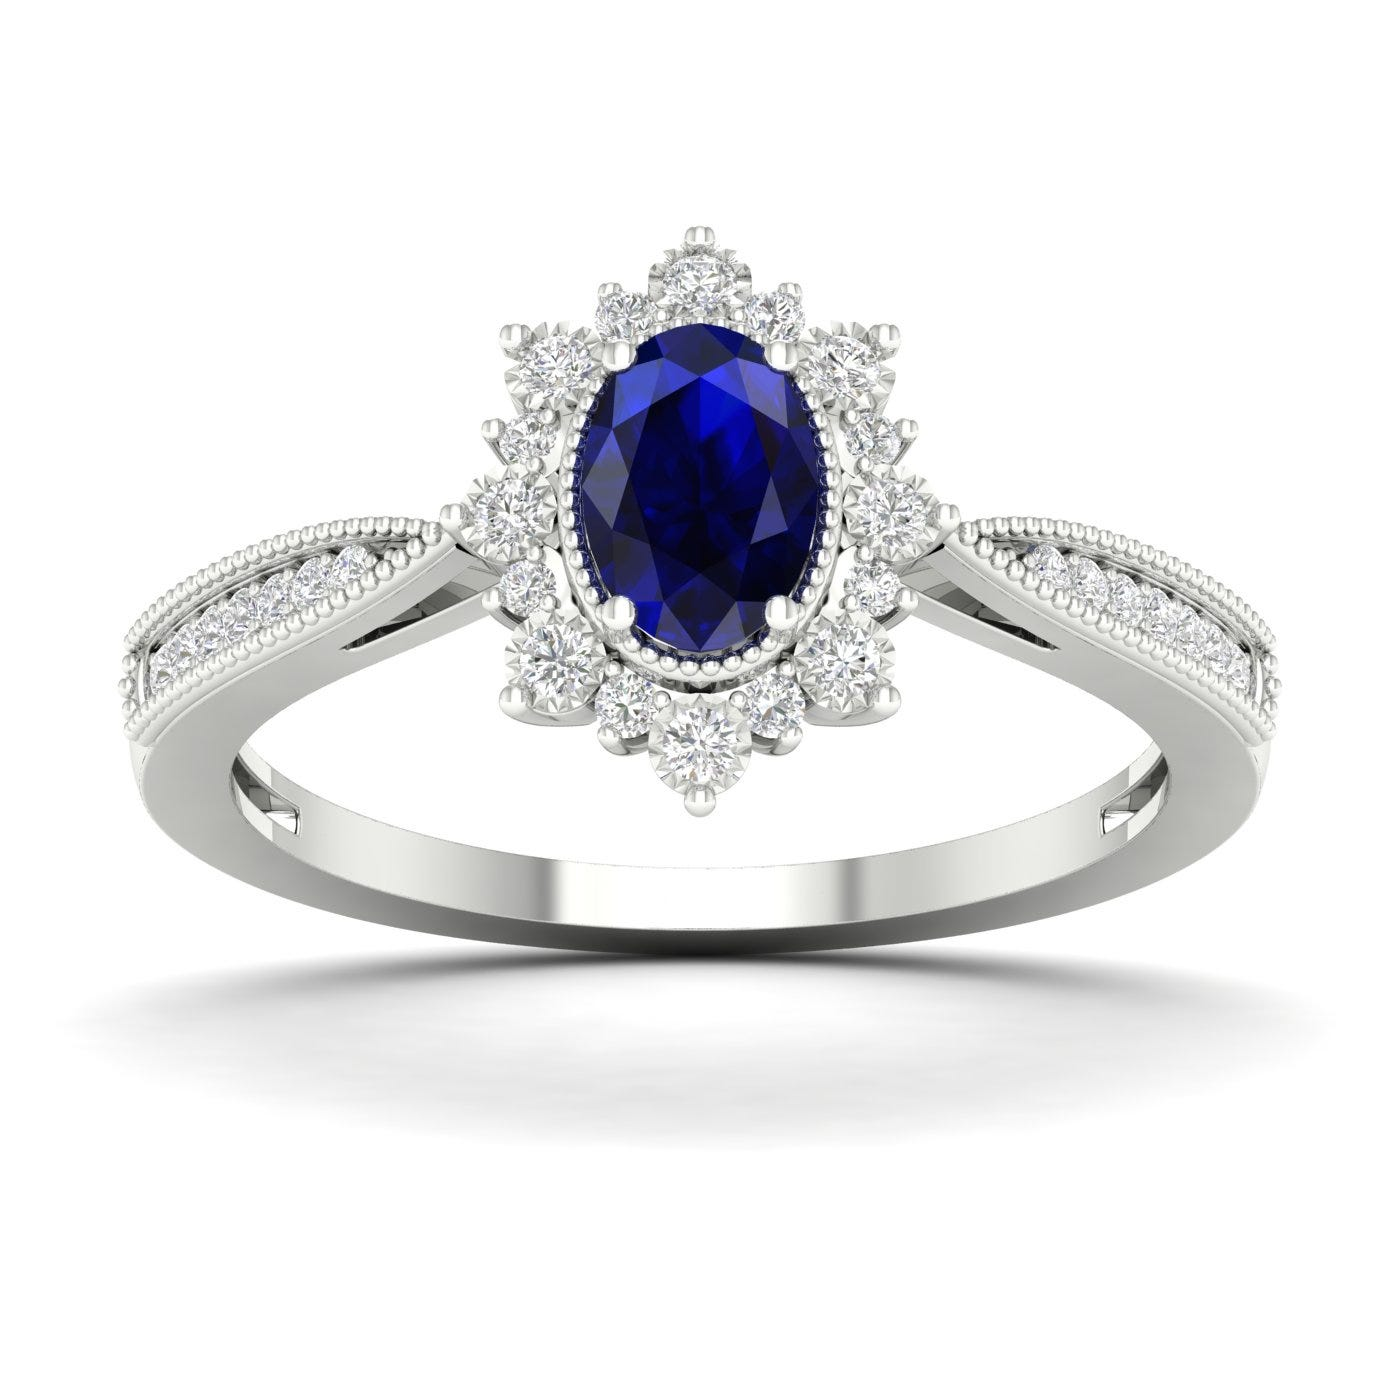 Oval Blue Sapphire Vintage Halo Ring in 10k White Gold